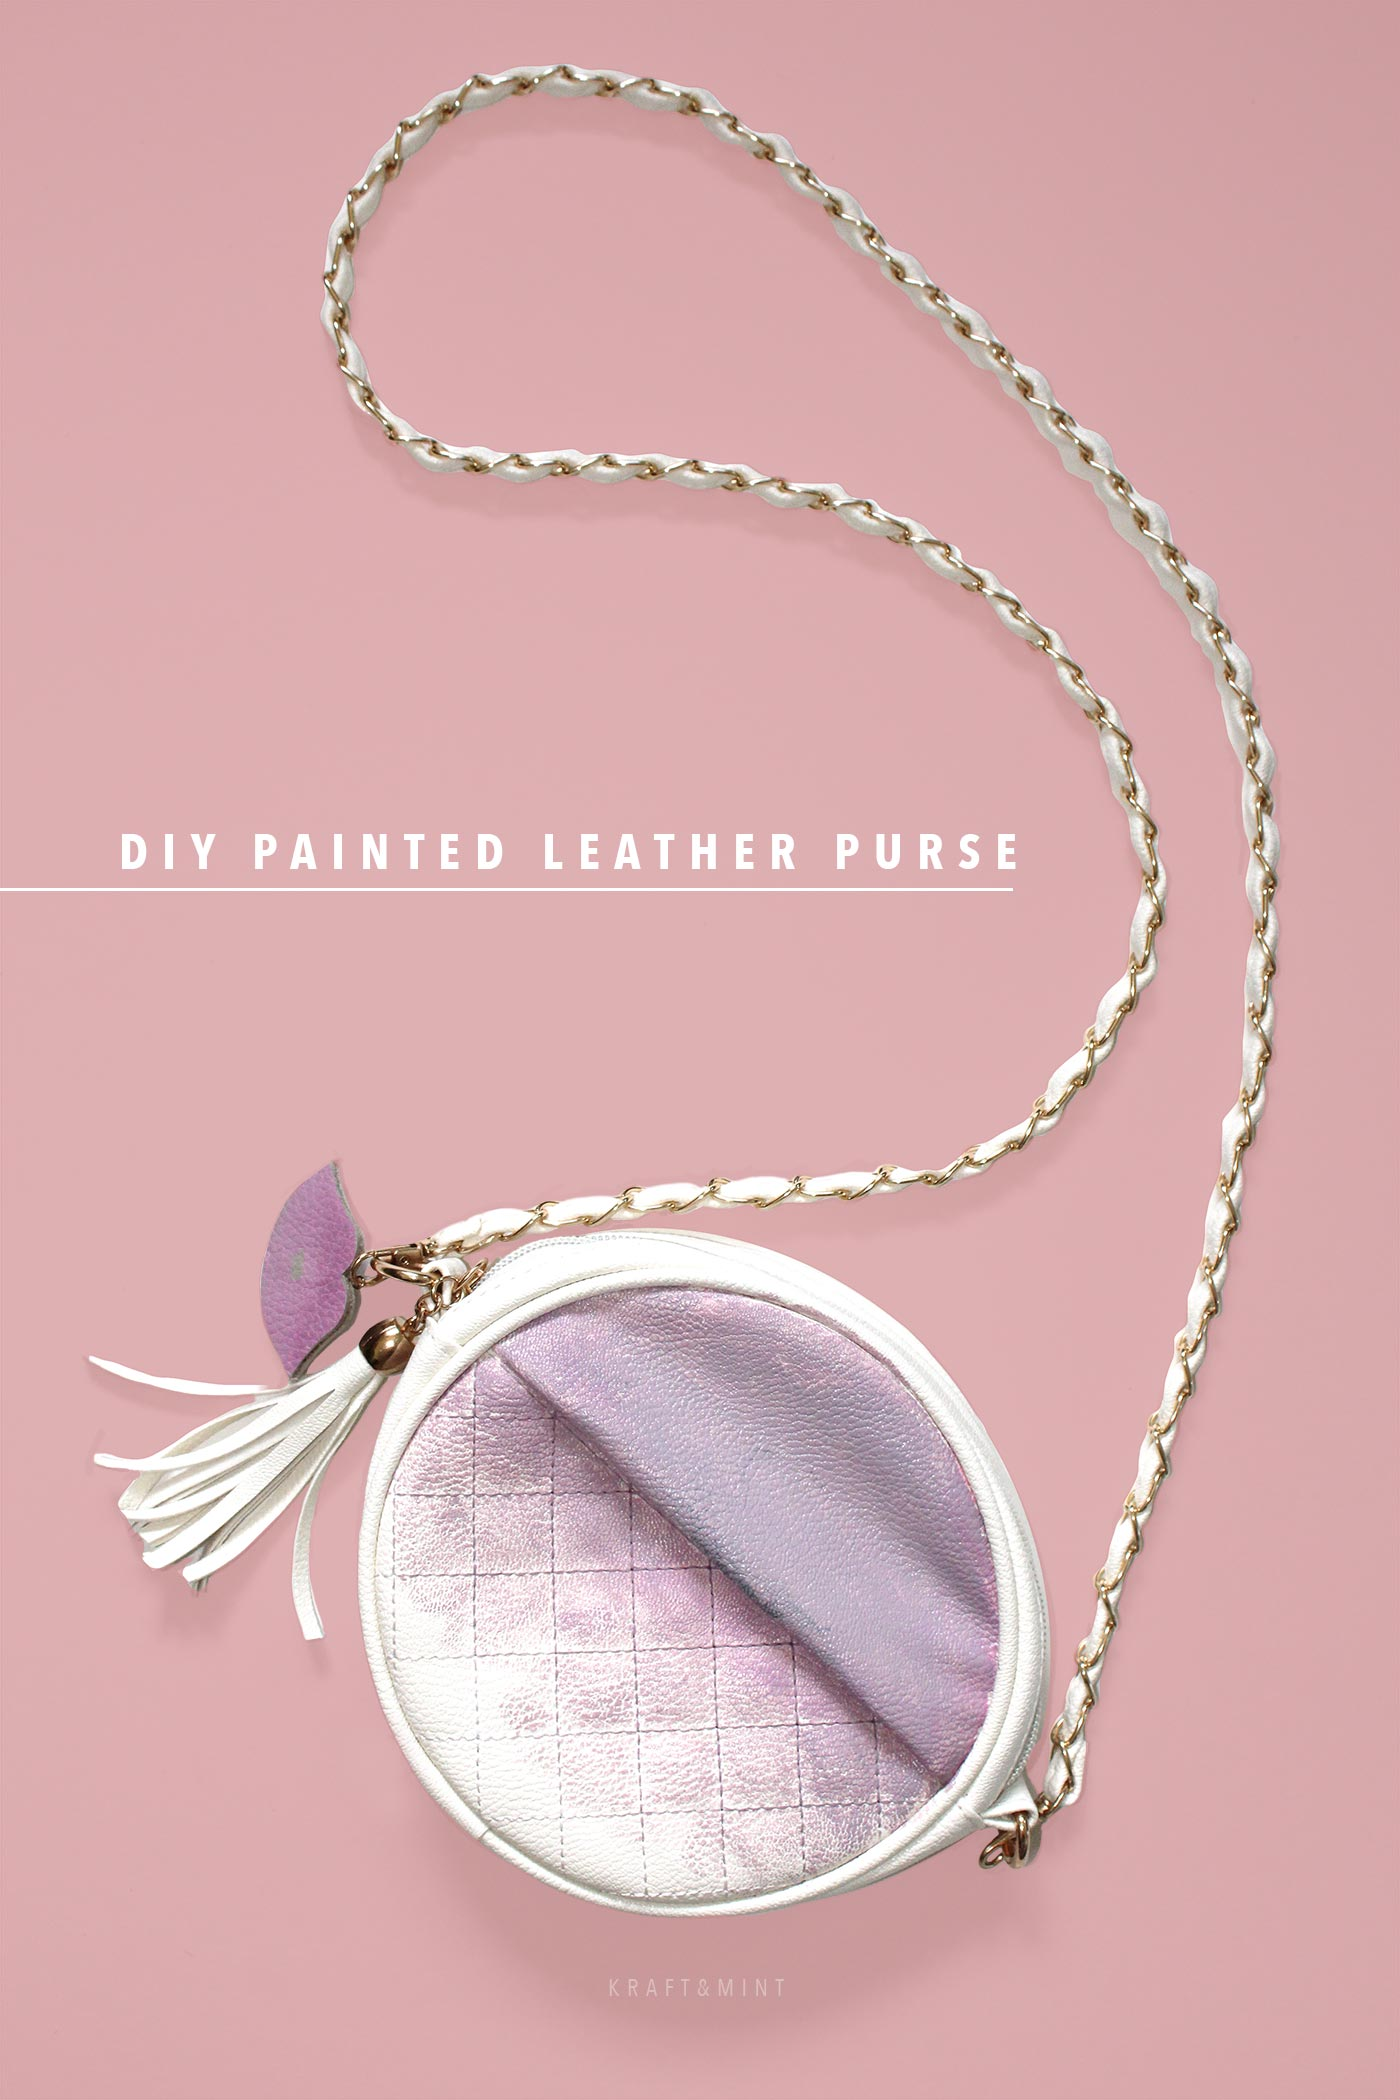 DIY Painted Leather Purse kraft&mint blog